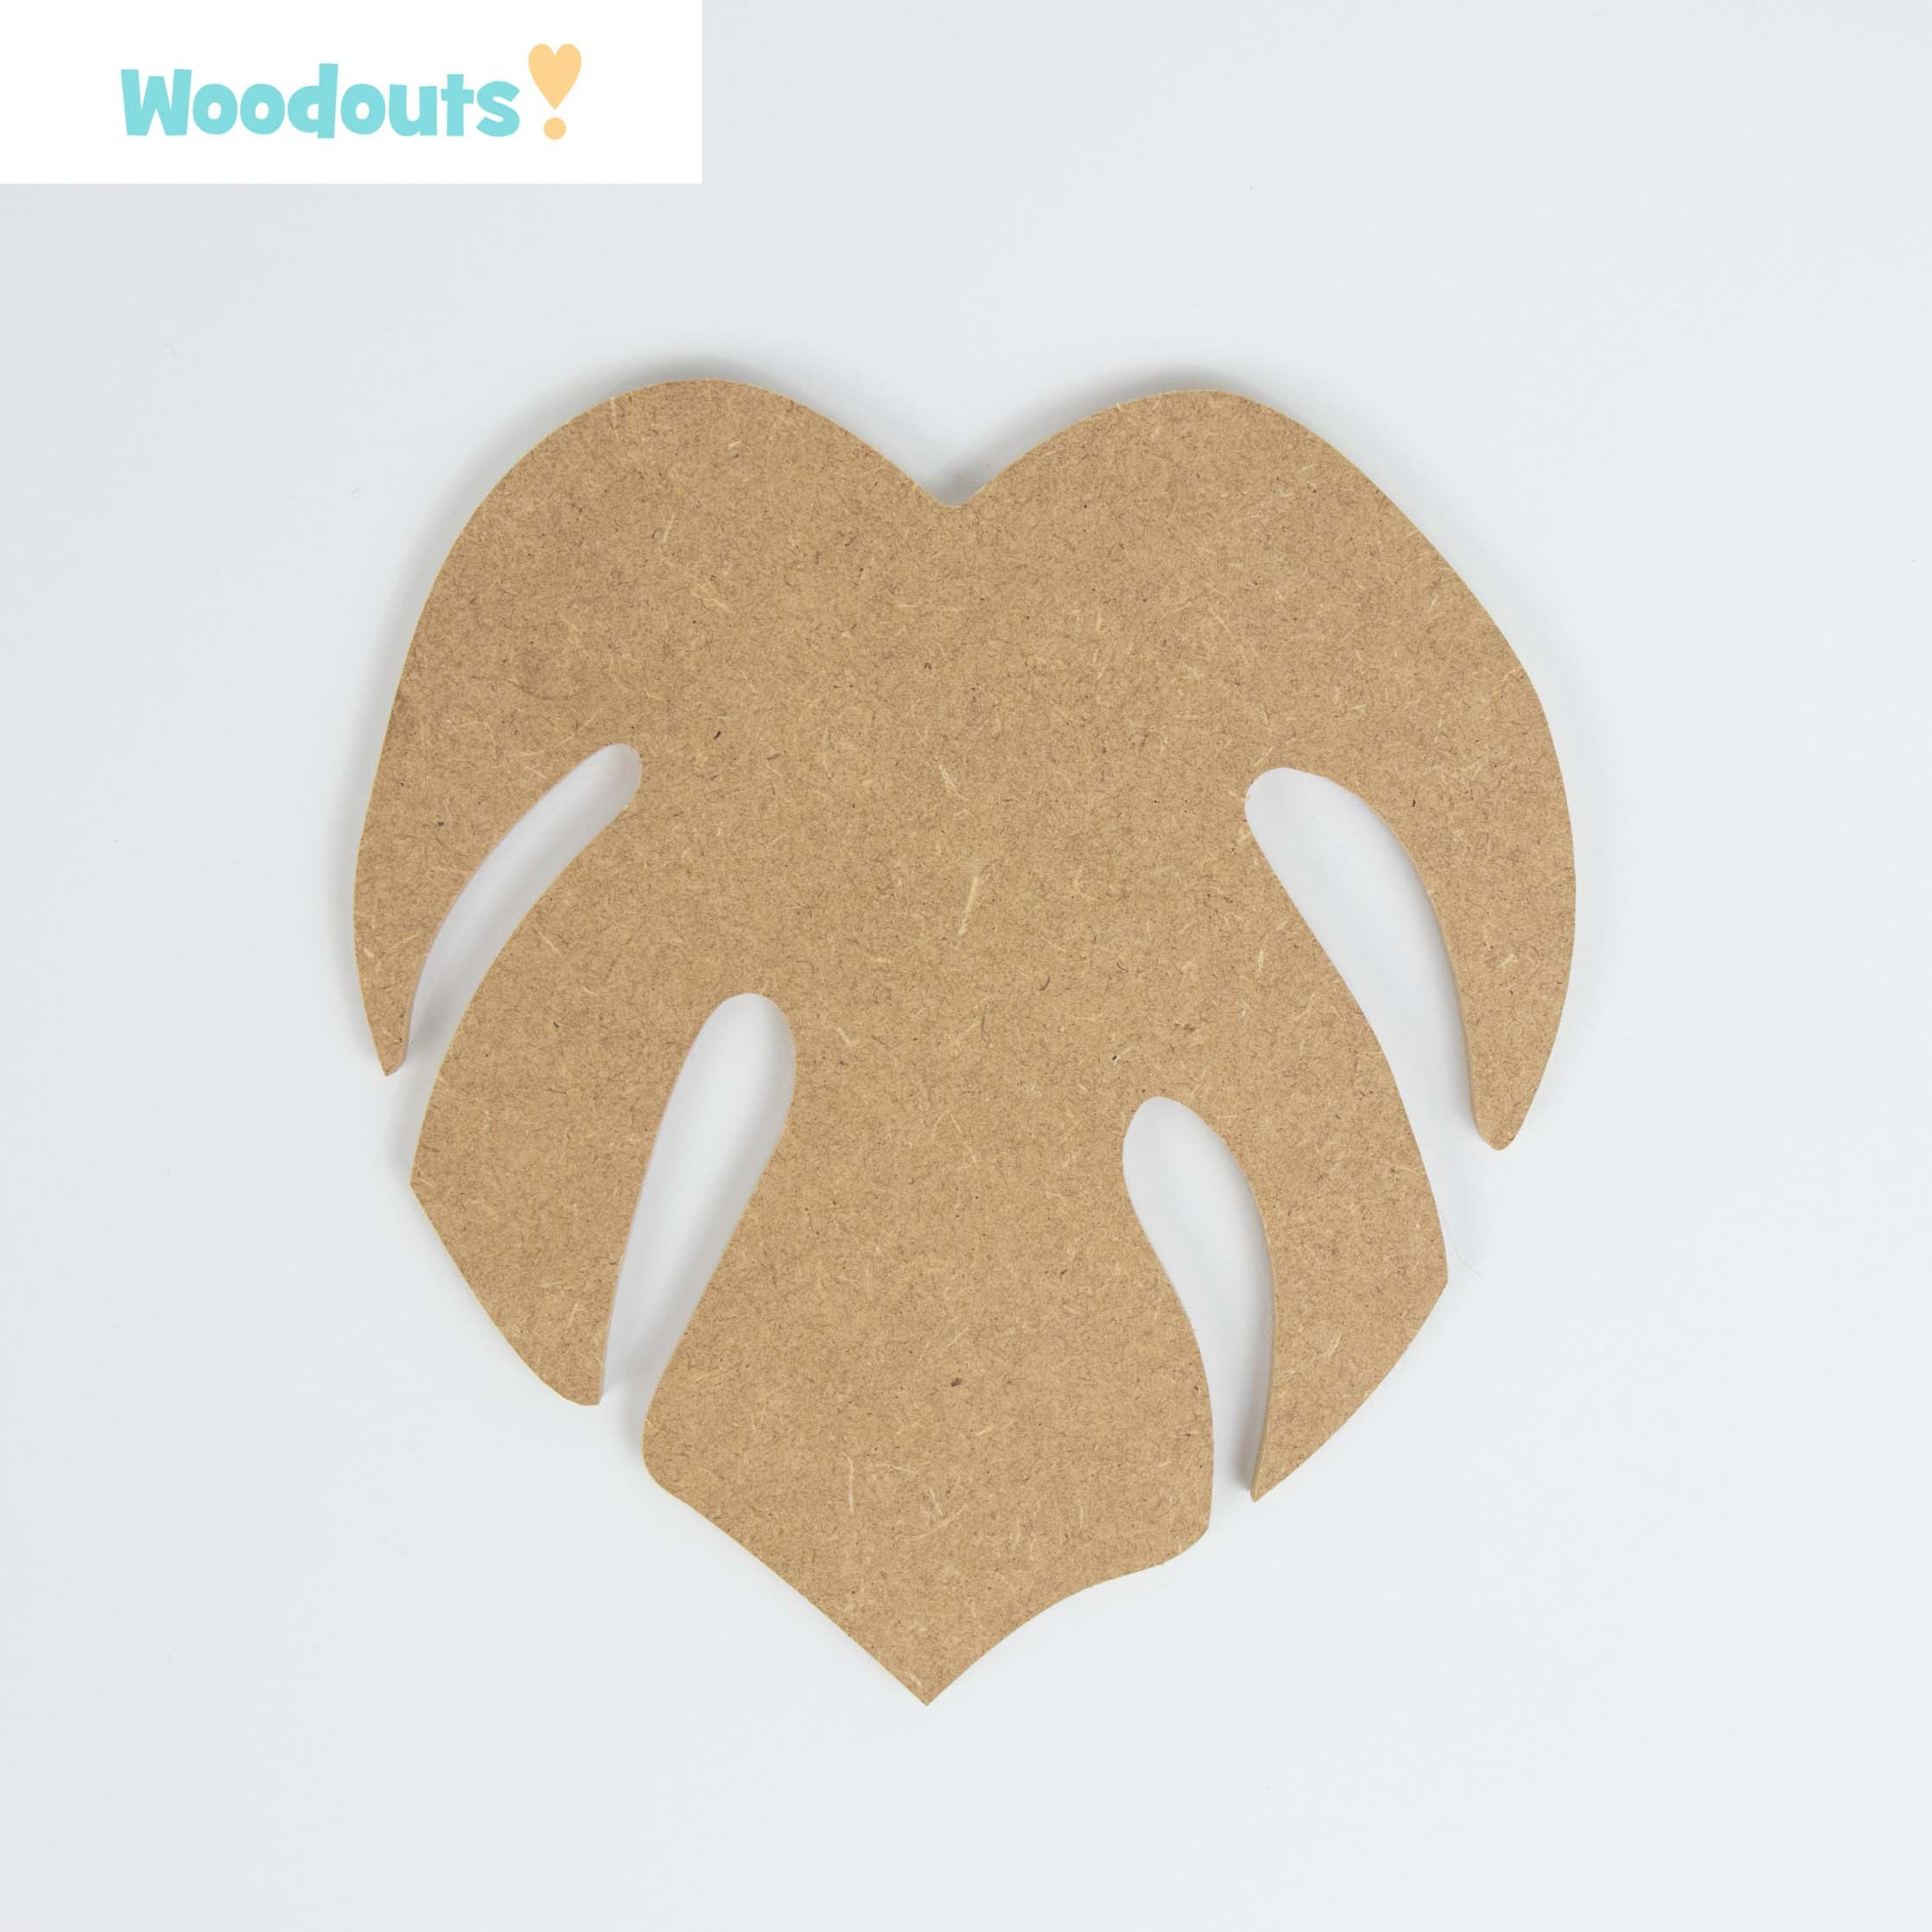 Wrapper Various Sizes Sweet Craft Shape 2mm MDF Wood Candy Sweets